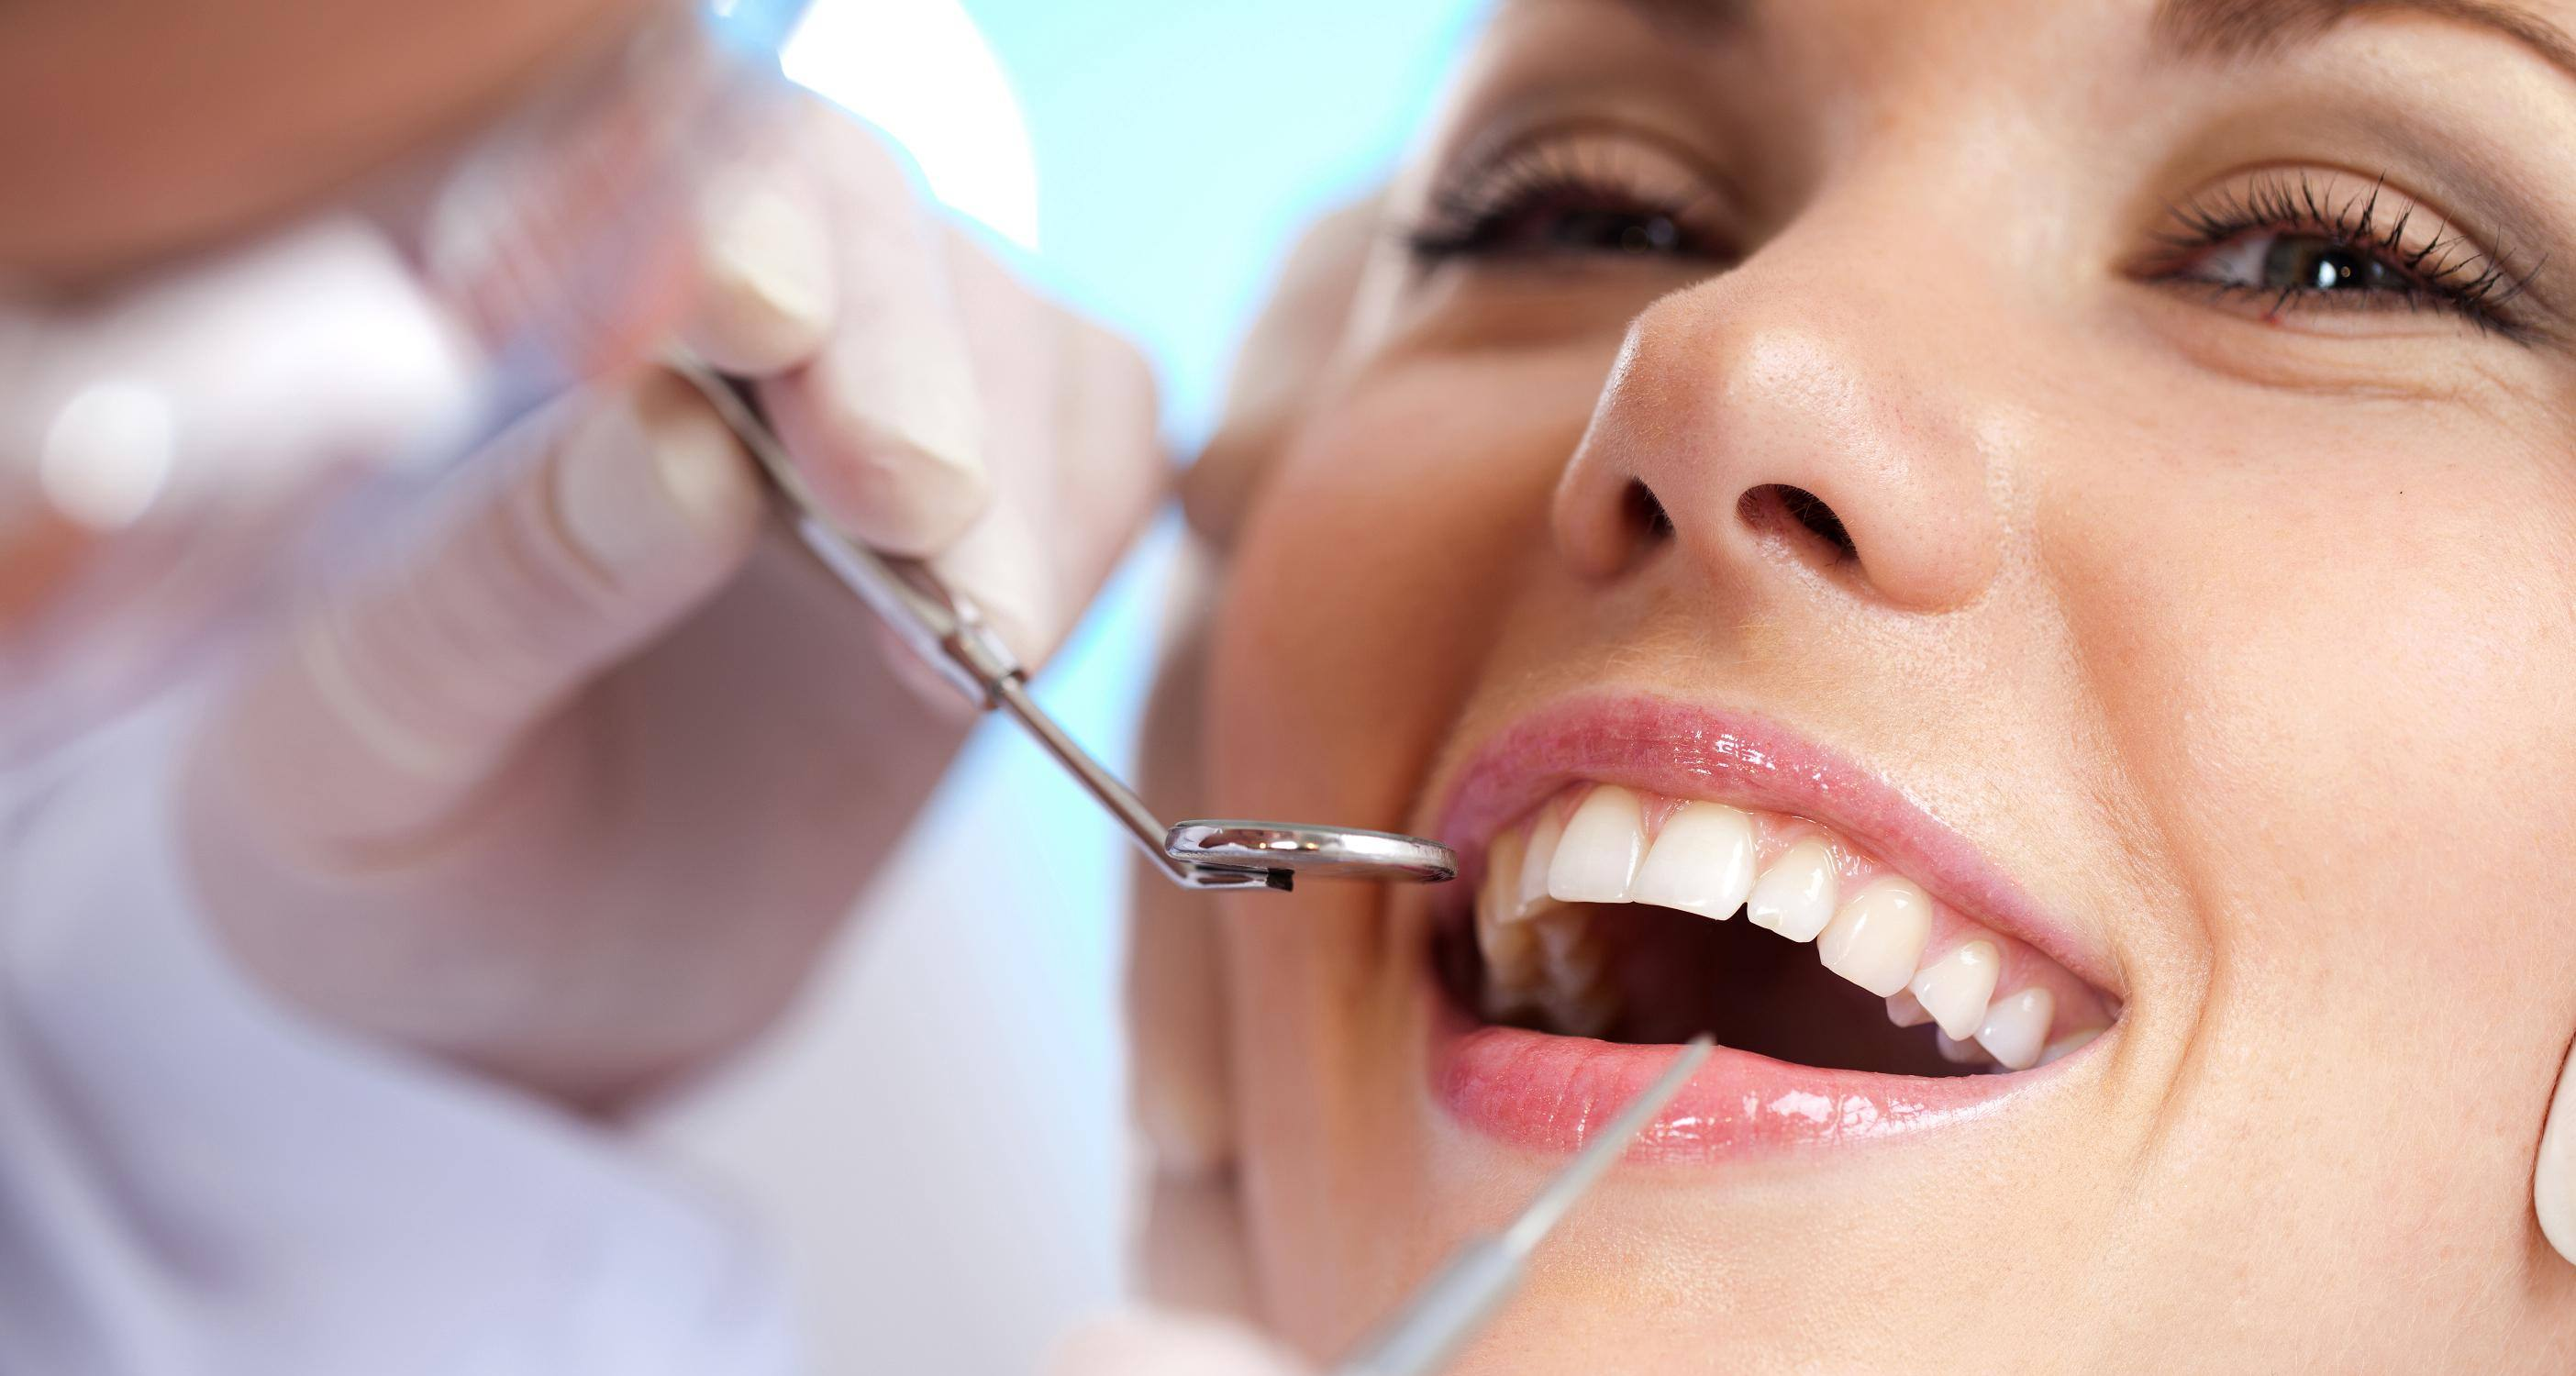 Why You Should Go For The Dental Implants?